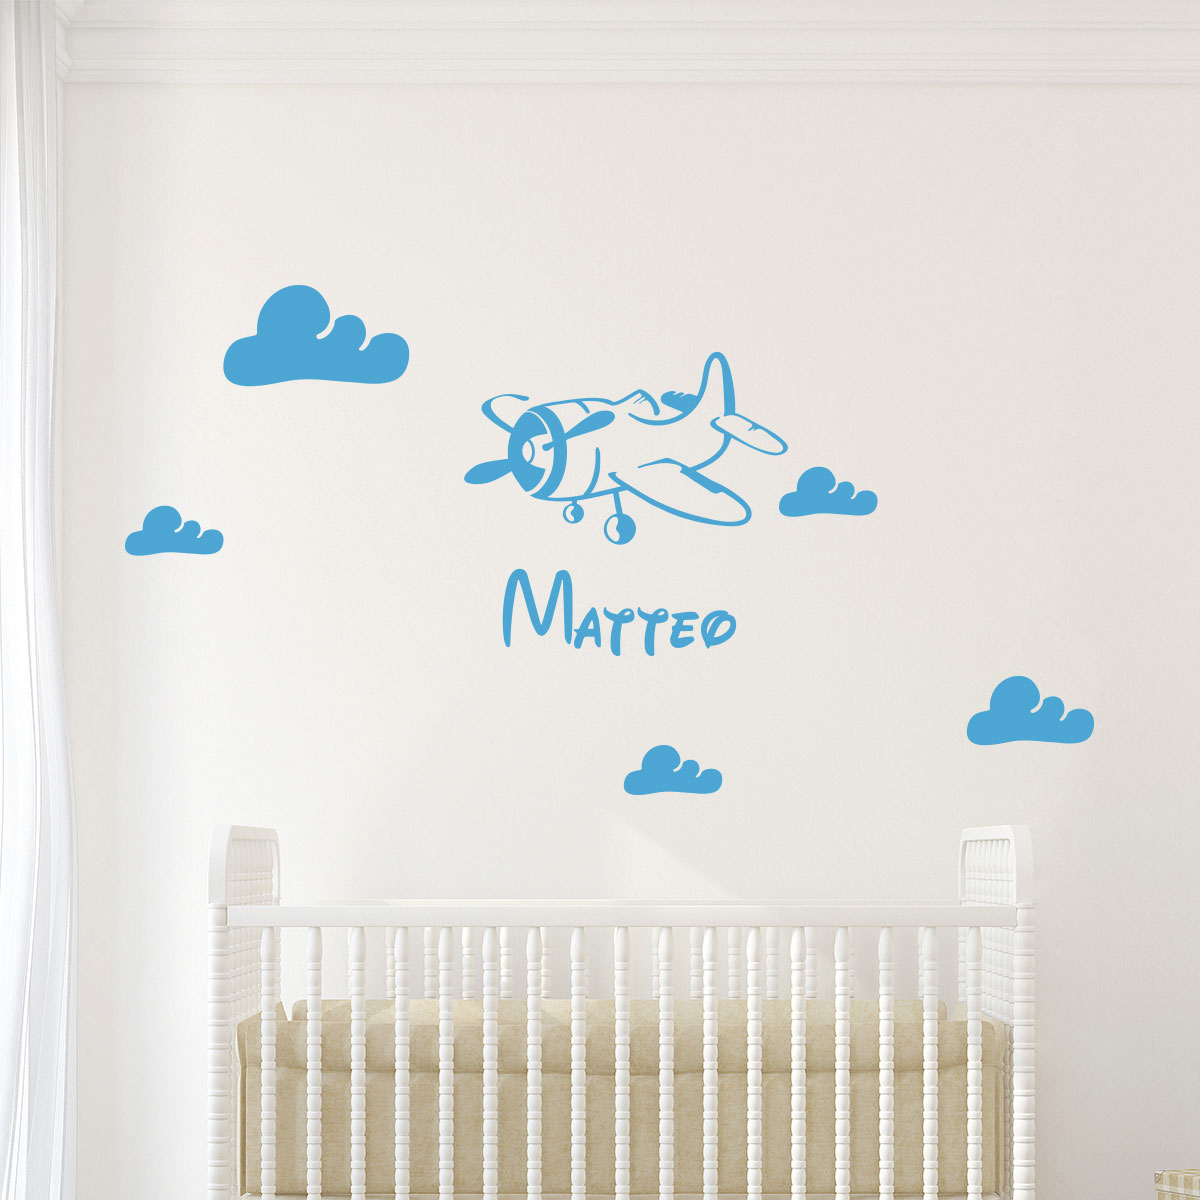 sticker pr 233 nom personnalis 233 avion et nuages mini stickers pr 233 nom perso ambiance sticker